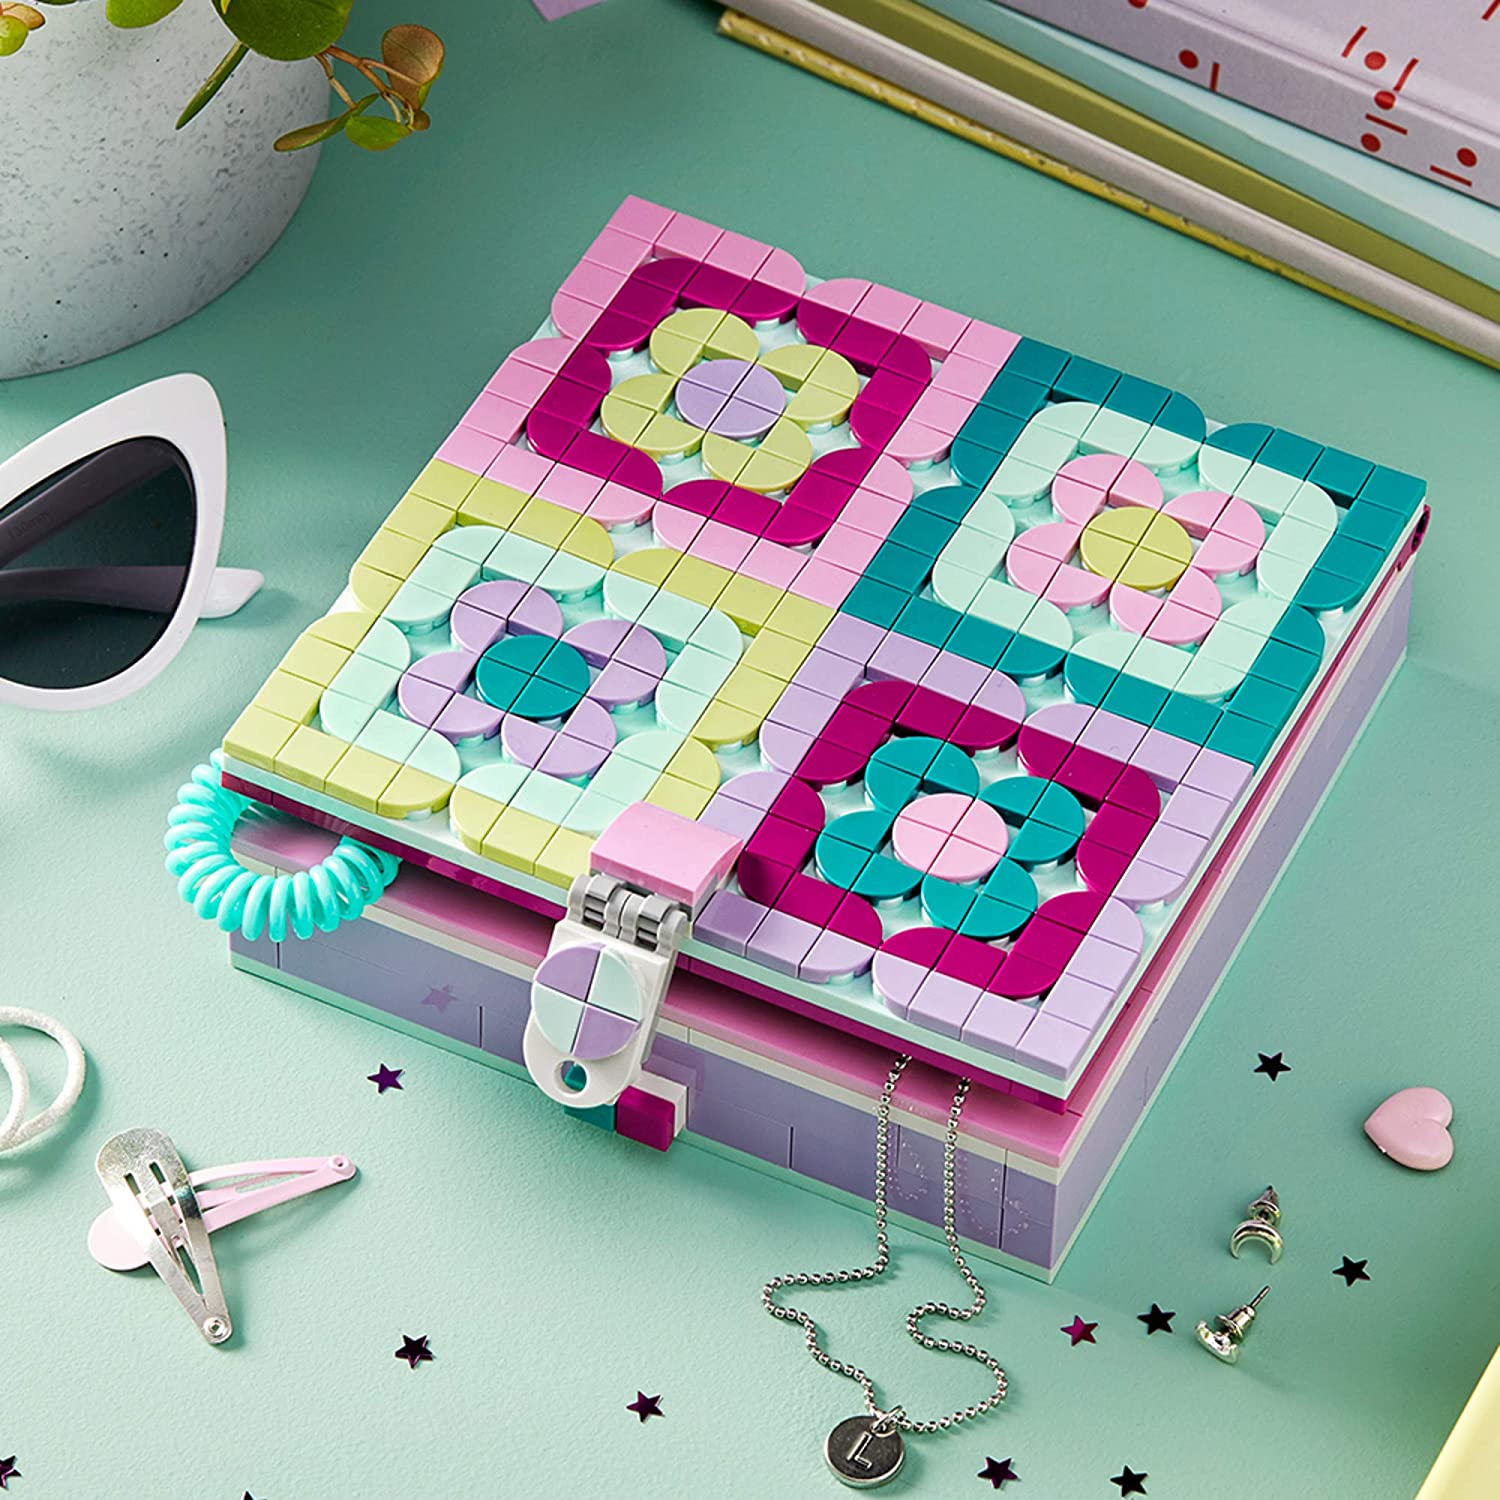 374 Pieces New 2020 for Kids Who are Into Cool Arts and Crafts A Great Entrance into Unique Arts and Crafts Toys for Kids LEGO DOTS Jewelry Box 41915 Craft Decorations Art Kit